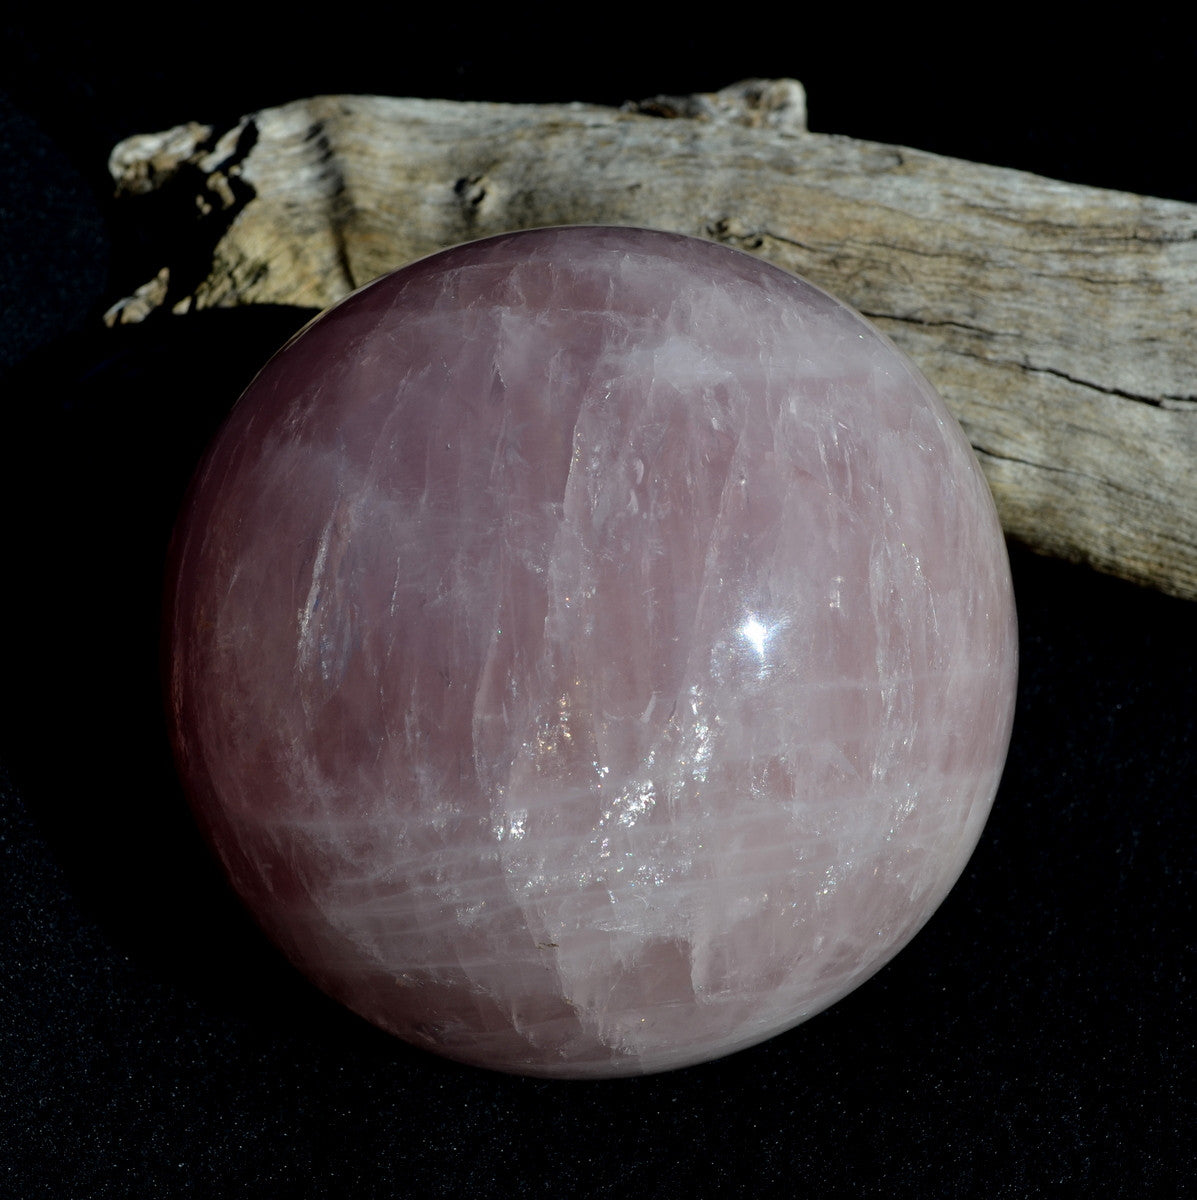 Star Rose Quartz Large Sphere - Unconditional Love Heart Healing - Shop Now at Illiom Crystals - Now with Afterpay